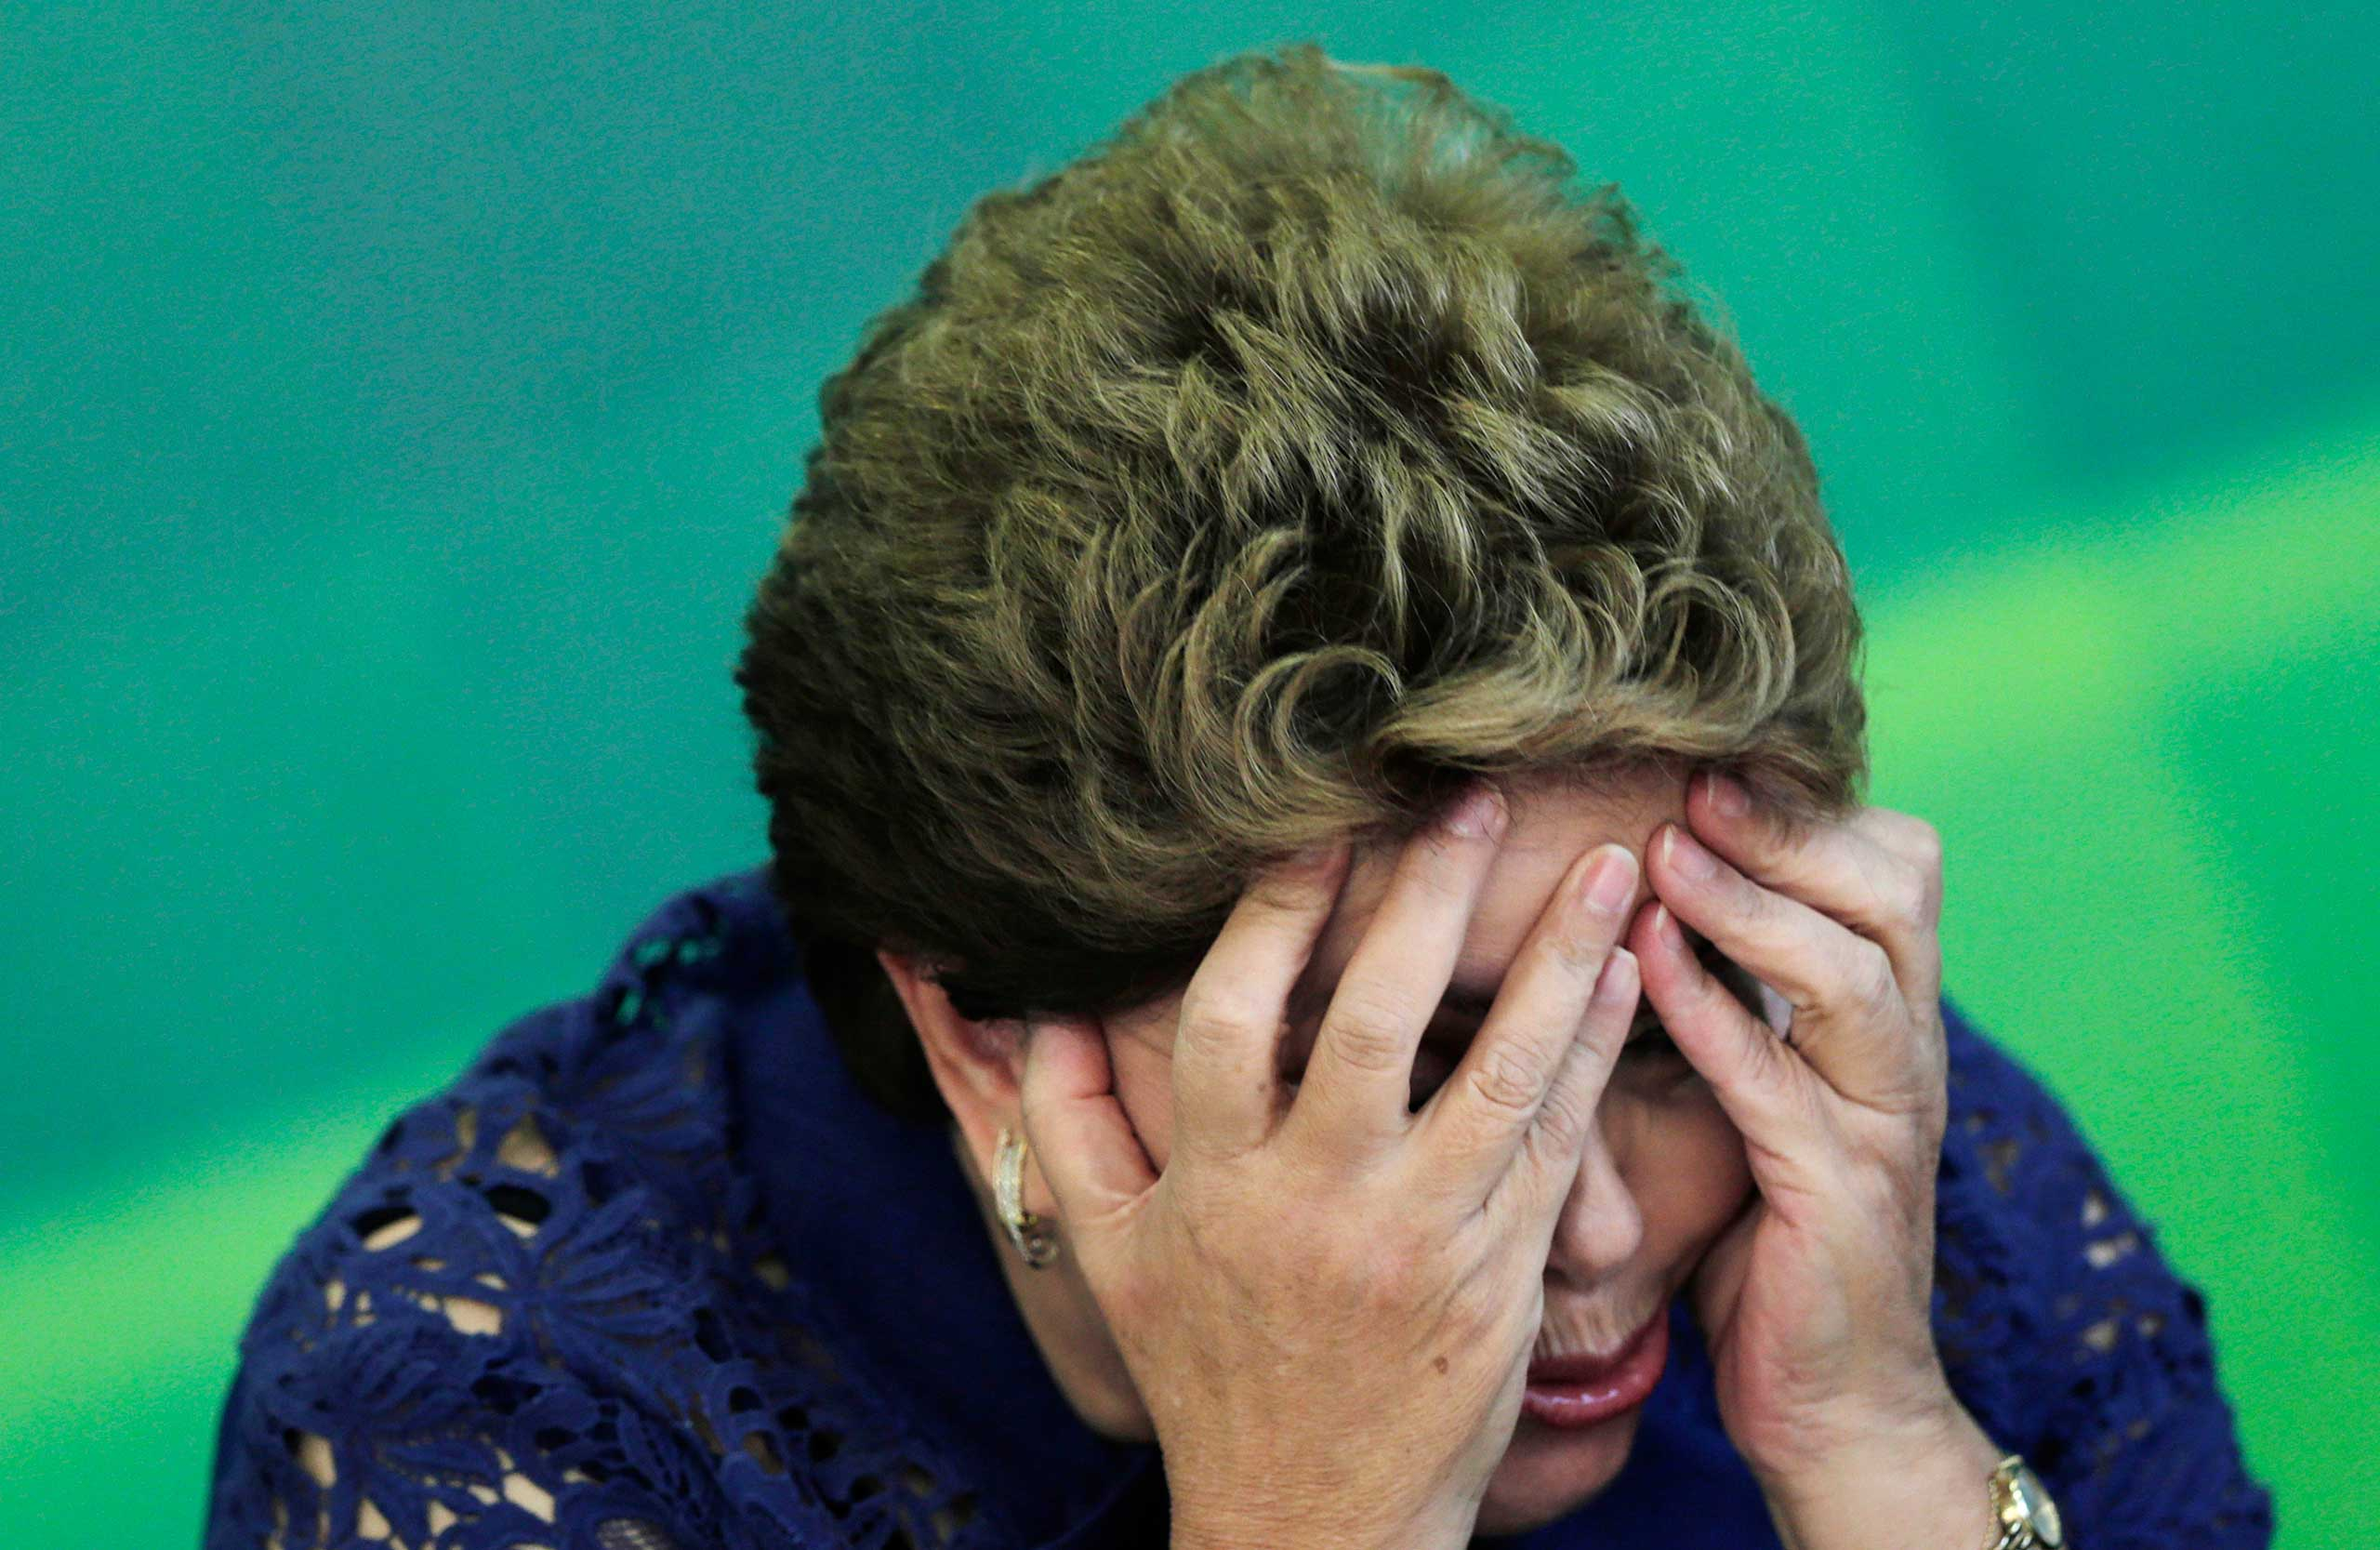 Brazilian President Dilma Rousseff reacts during a breakfast meeting with the media at the Planalto Palace in Brasilia, Dec. 22, 2014.